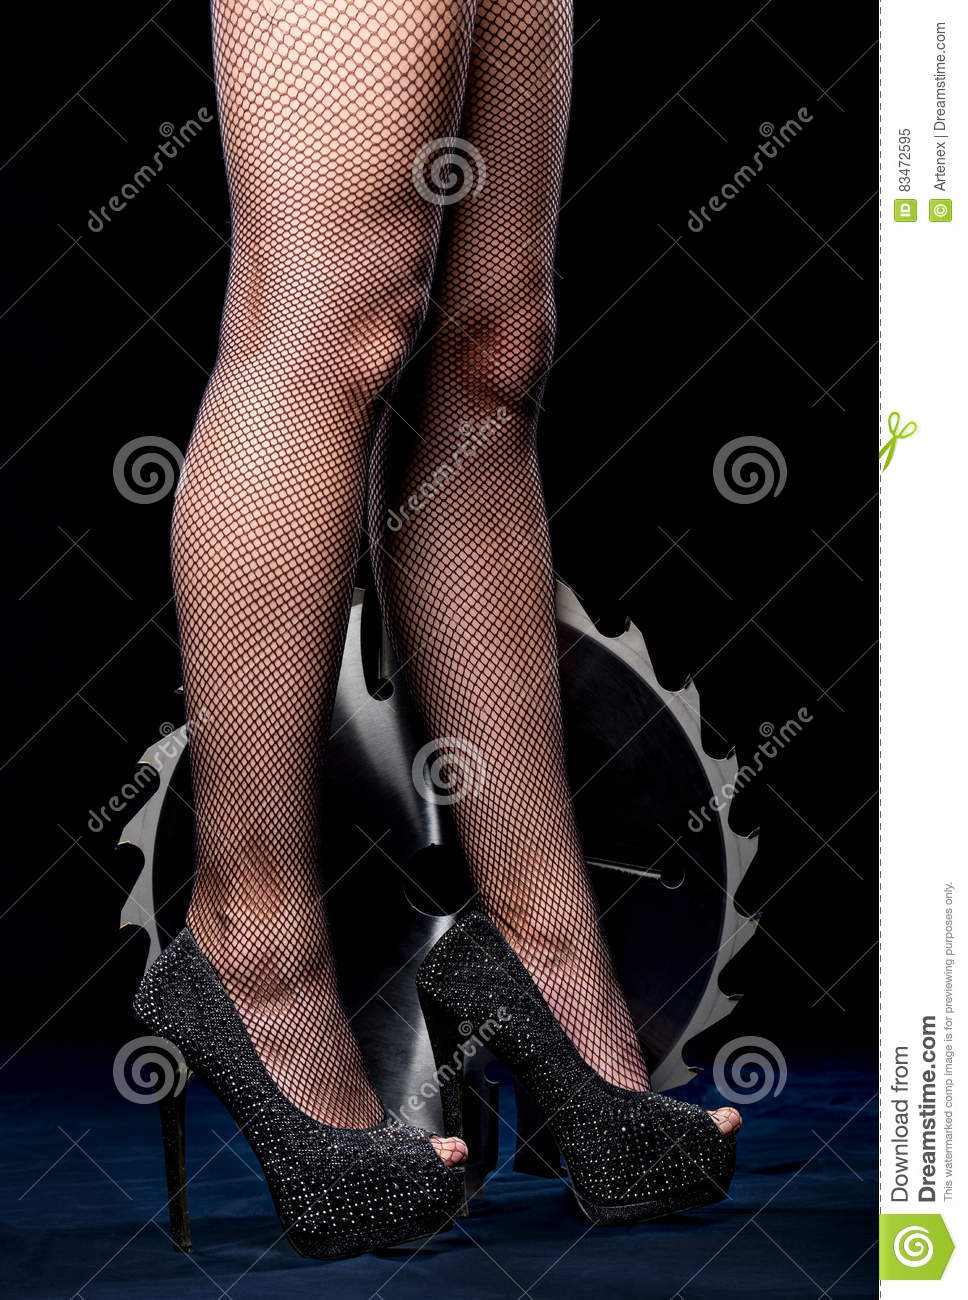 Portrait of beautiful girl with circular saw blade. Bretty woman legs, mesh stockings, black heeled shoes, sawblade